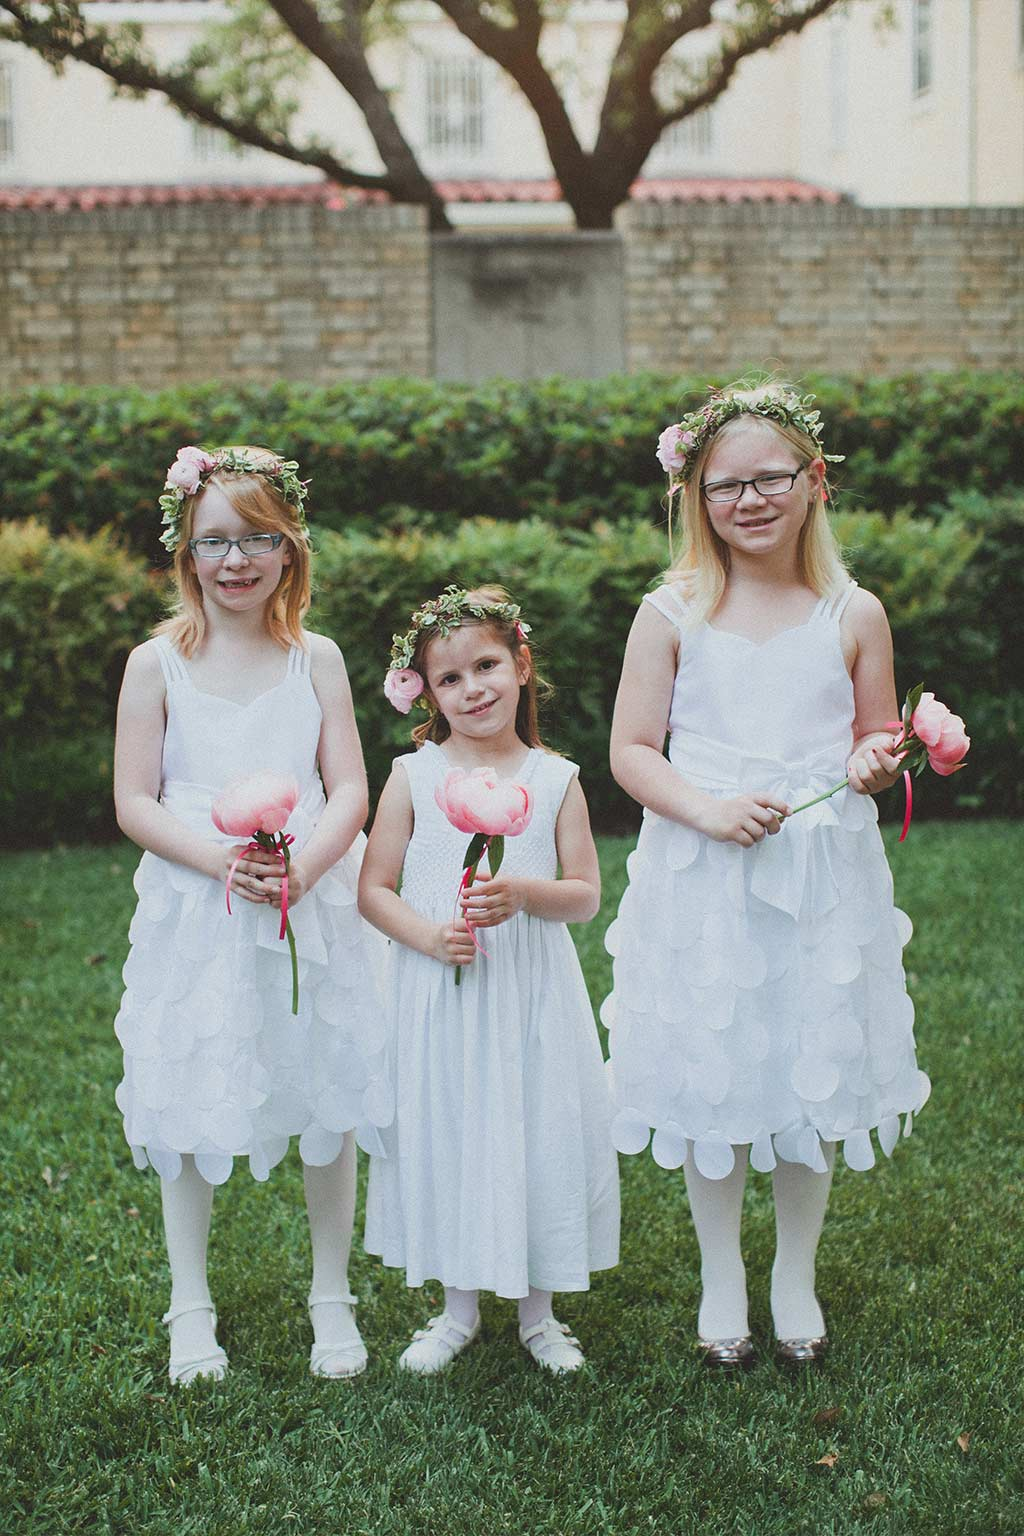 Flower Girls with Floral Head Wreaths